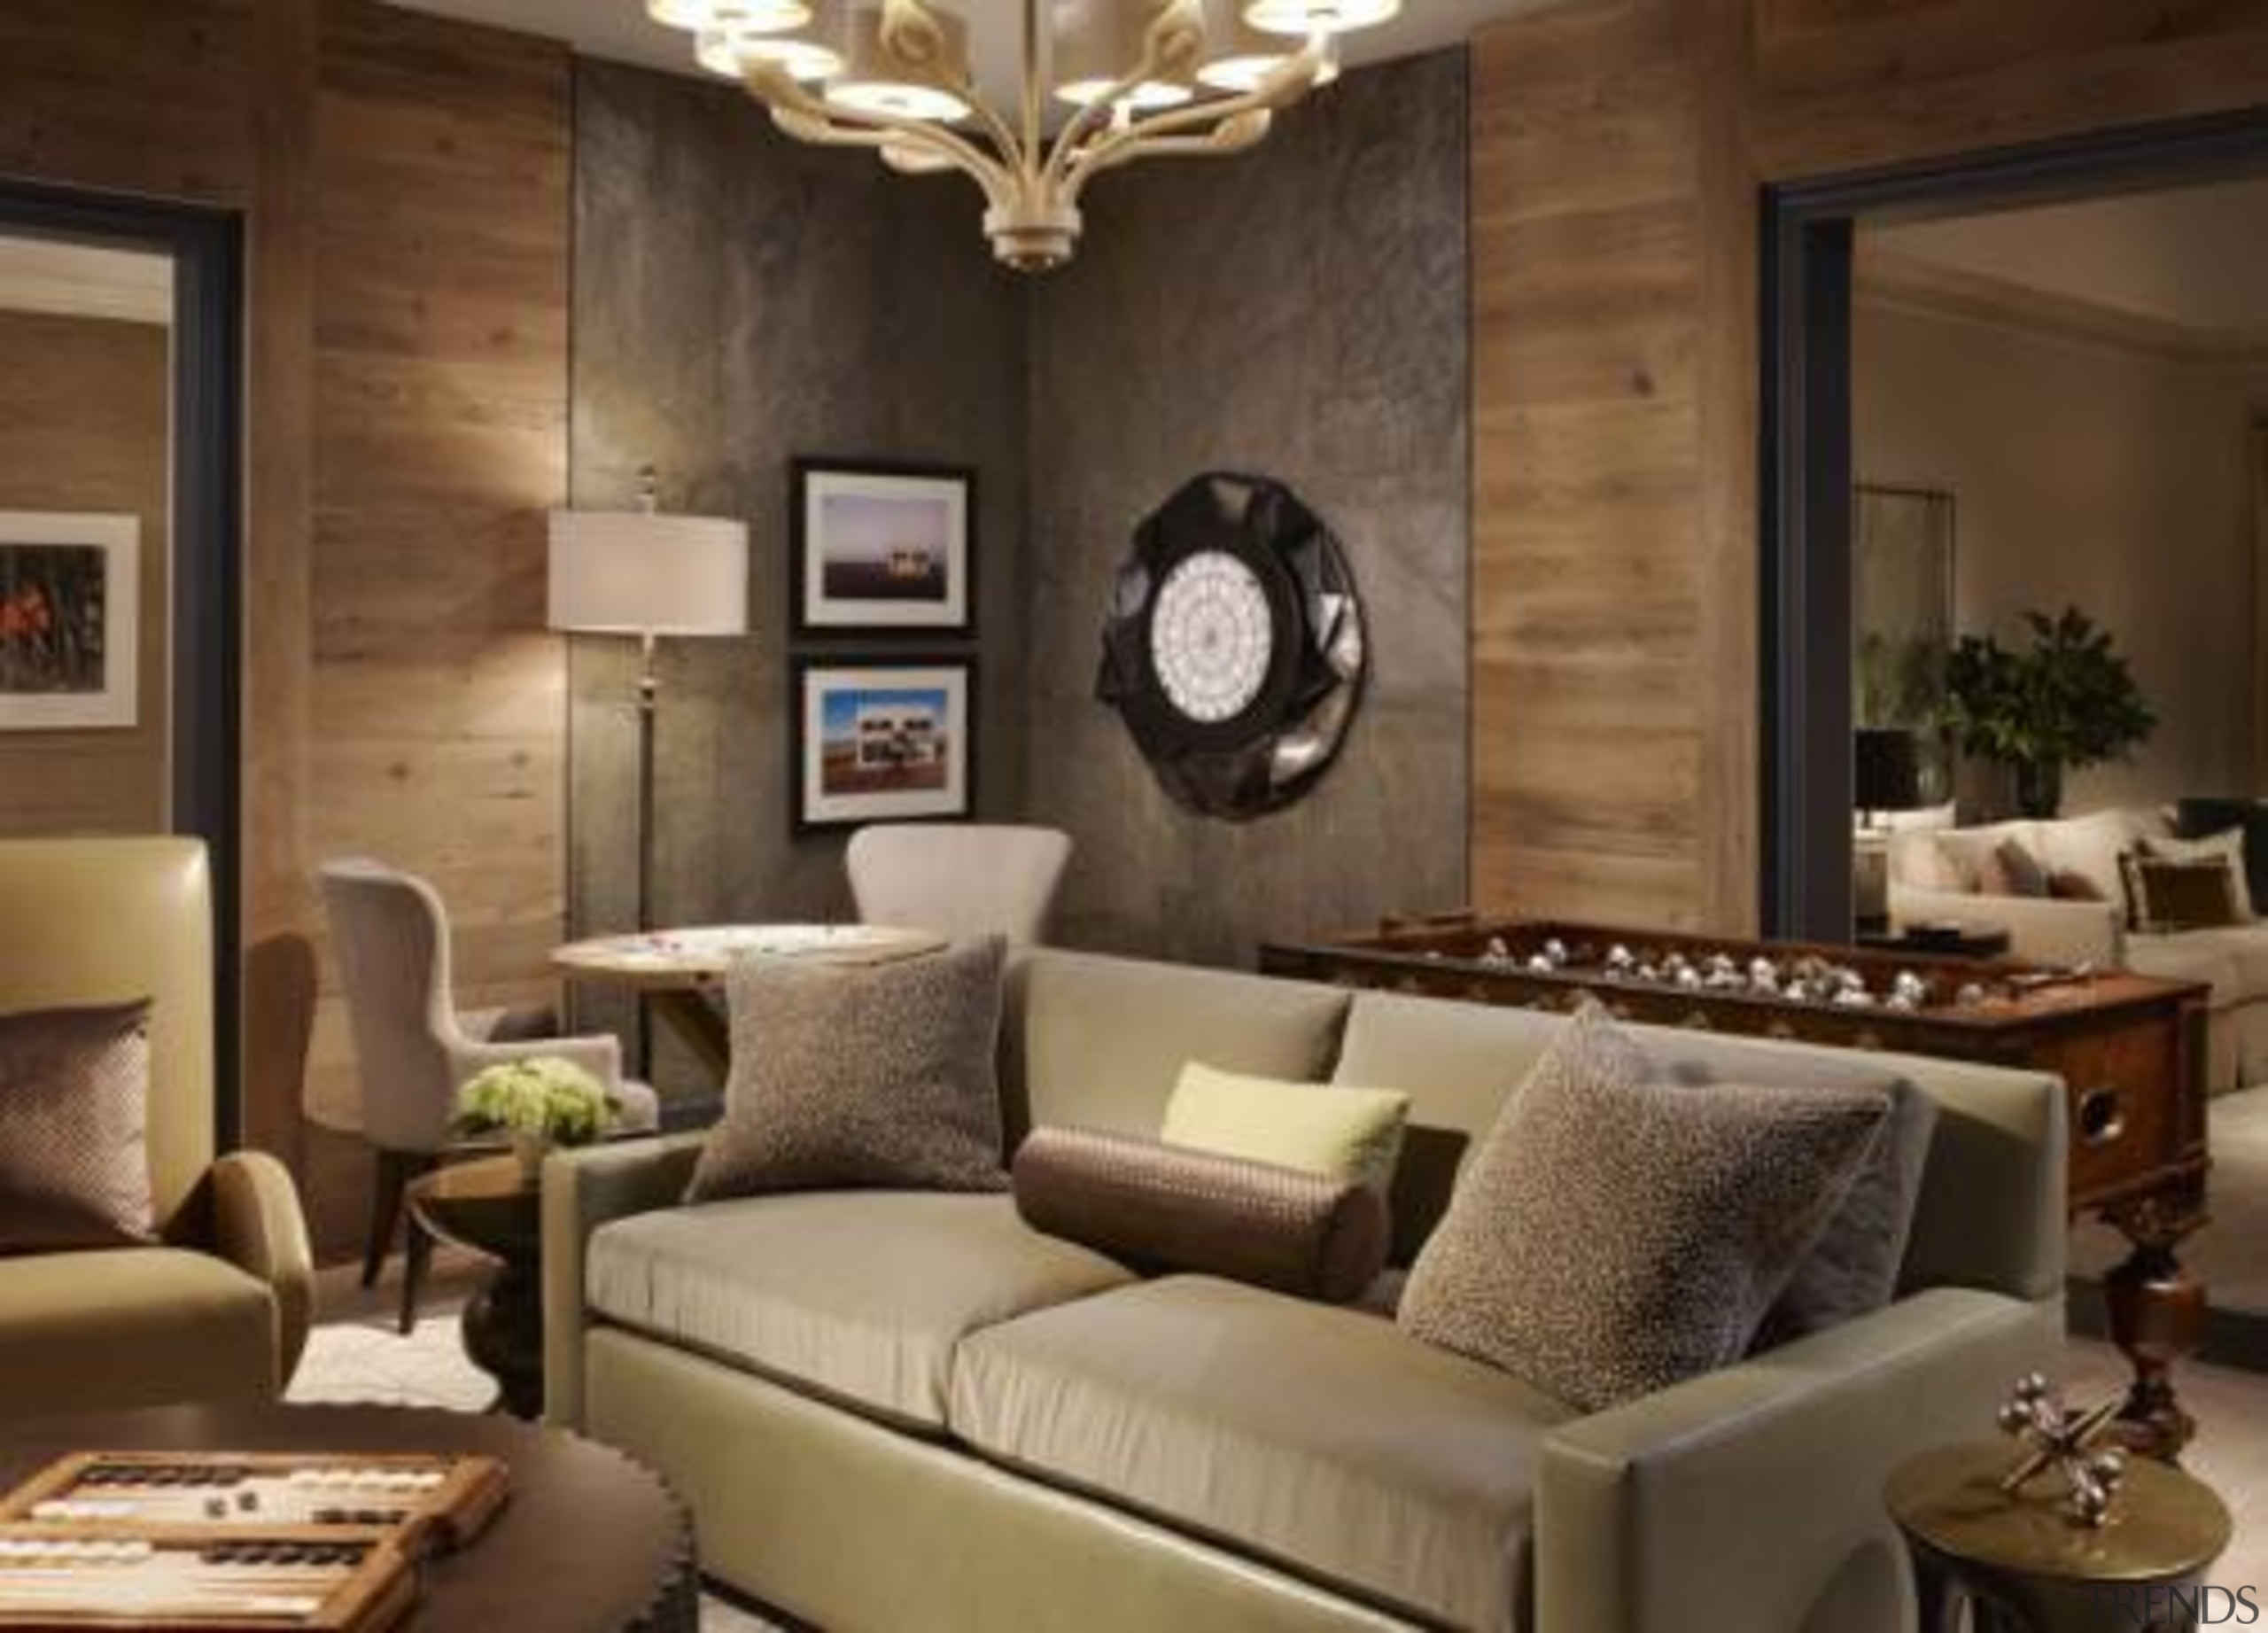 3. The excitement of seeing new possibilitiesYou want ceiling, furniture, home, interior design, living room, room, wall, brown